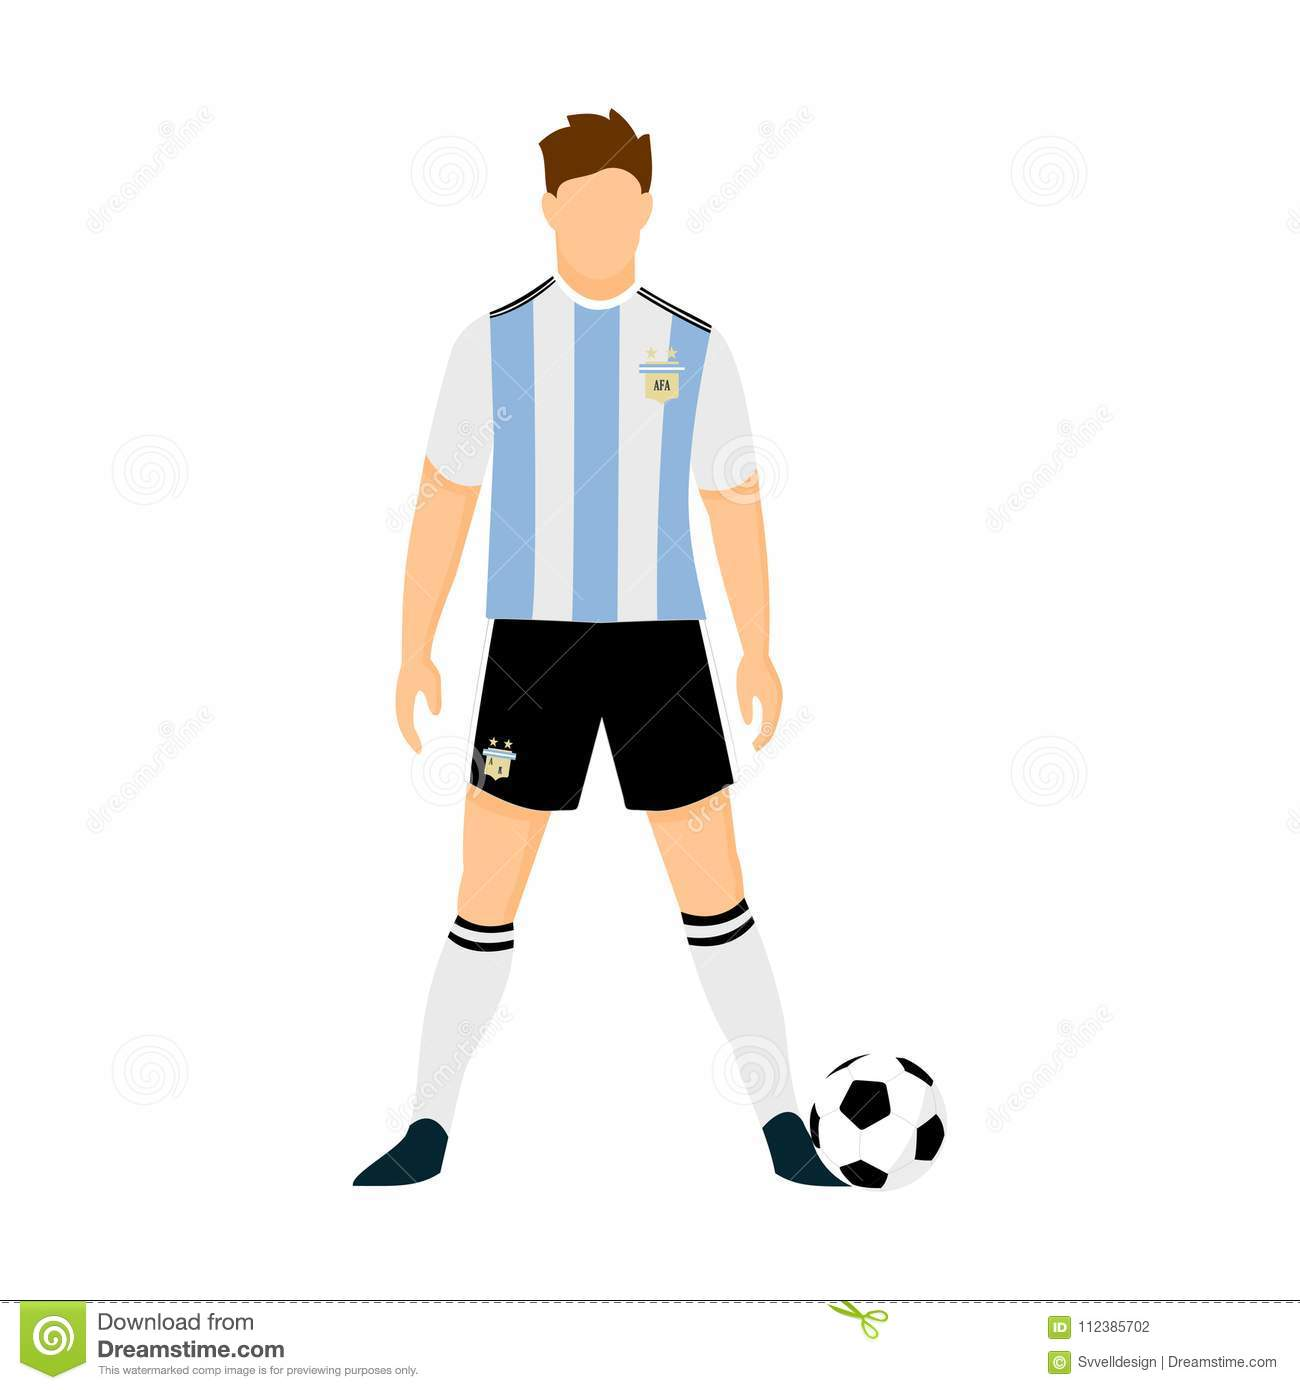 8c6f12b702c Argentina Football Jersey National Team World Cup Vector Illustration  Graphic Design